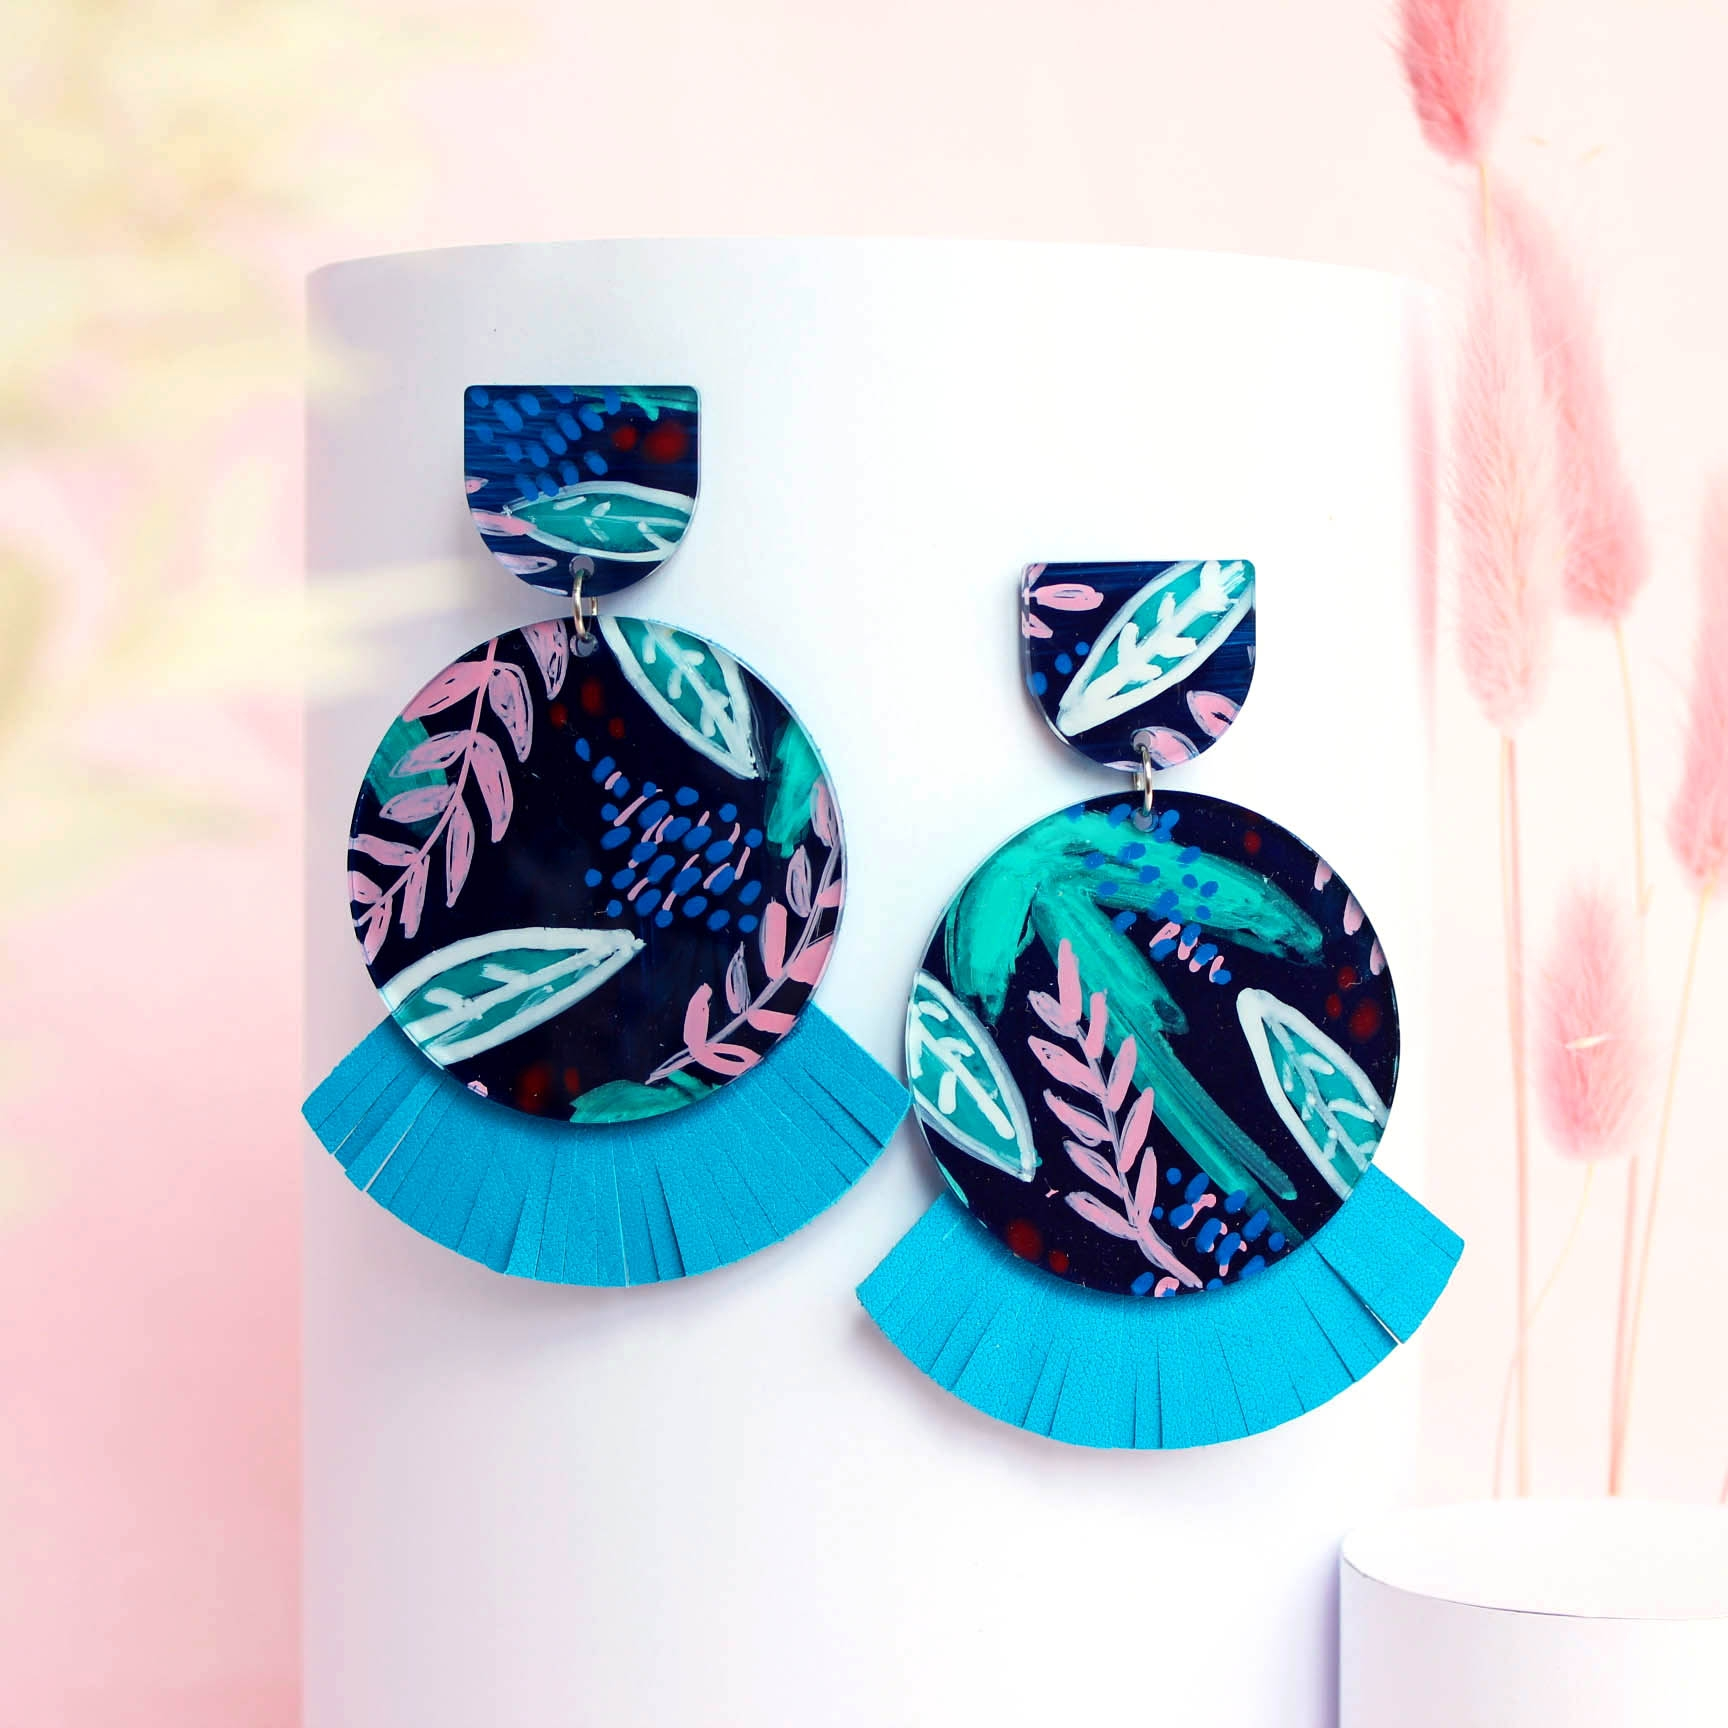 Lunar (Large Size) - Botanica – Bright Blue Leather Statement Earrings, hand painted